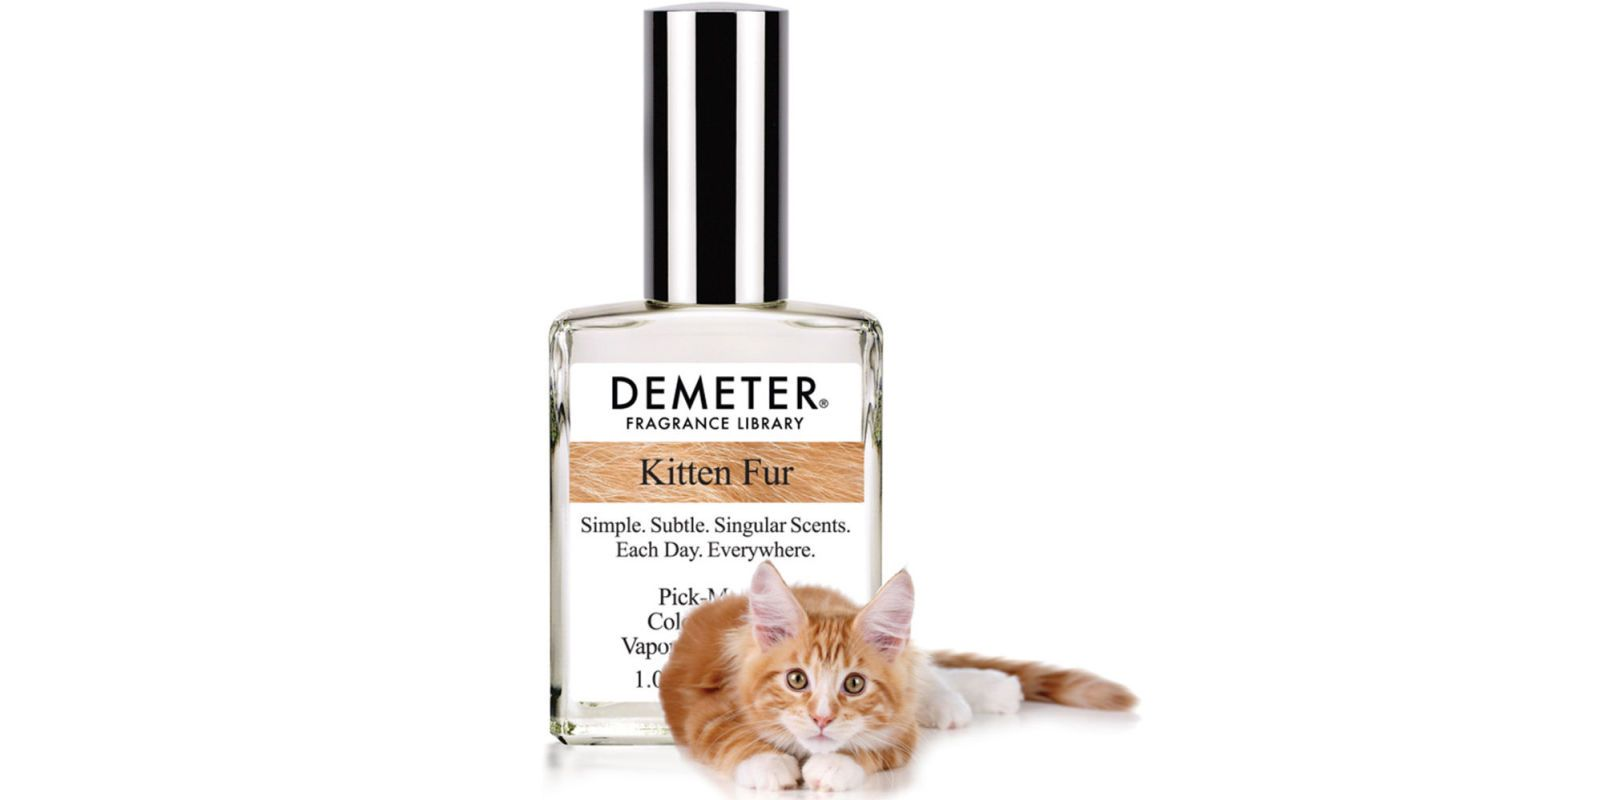 There's Now A Perfume That Smells Like Kitten Fur